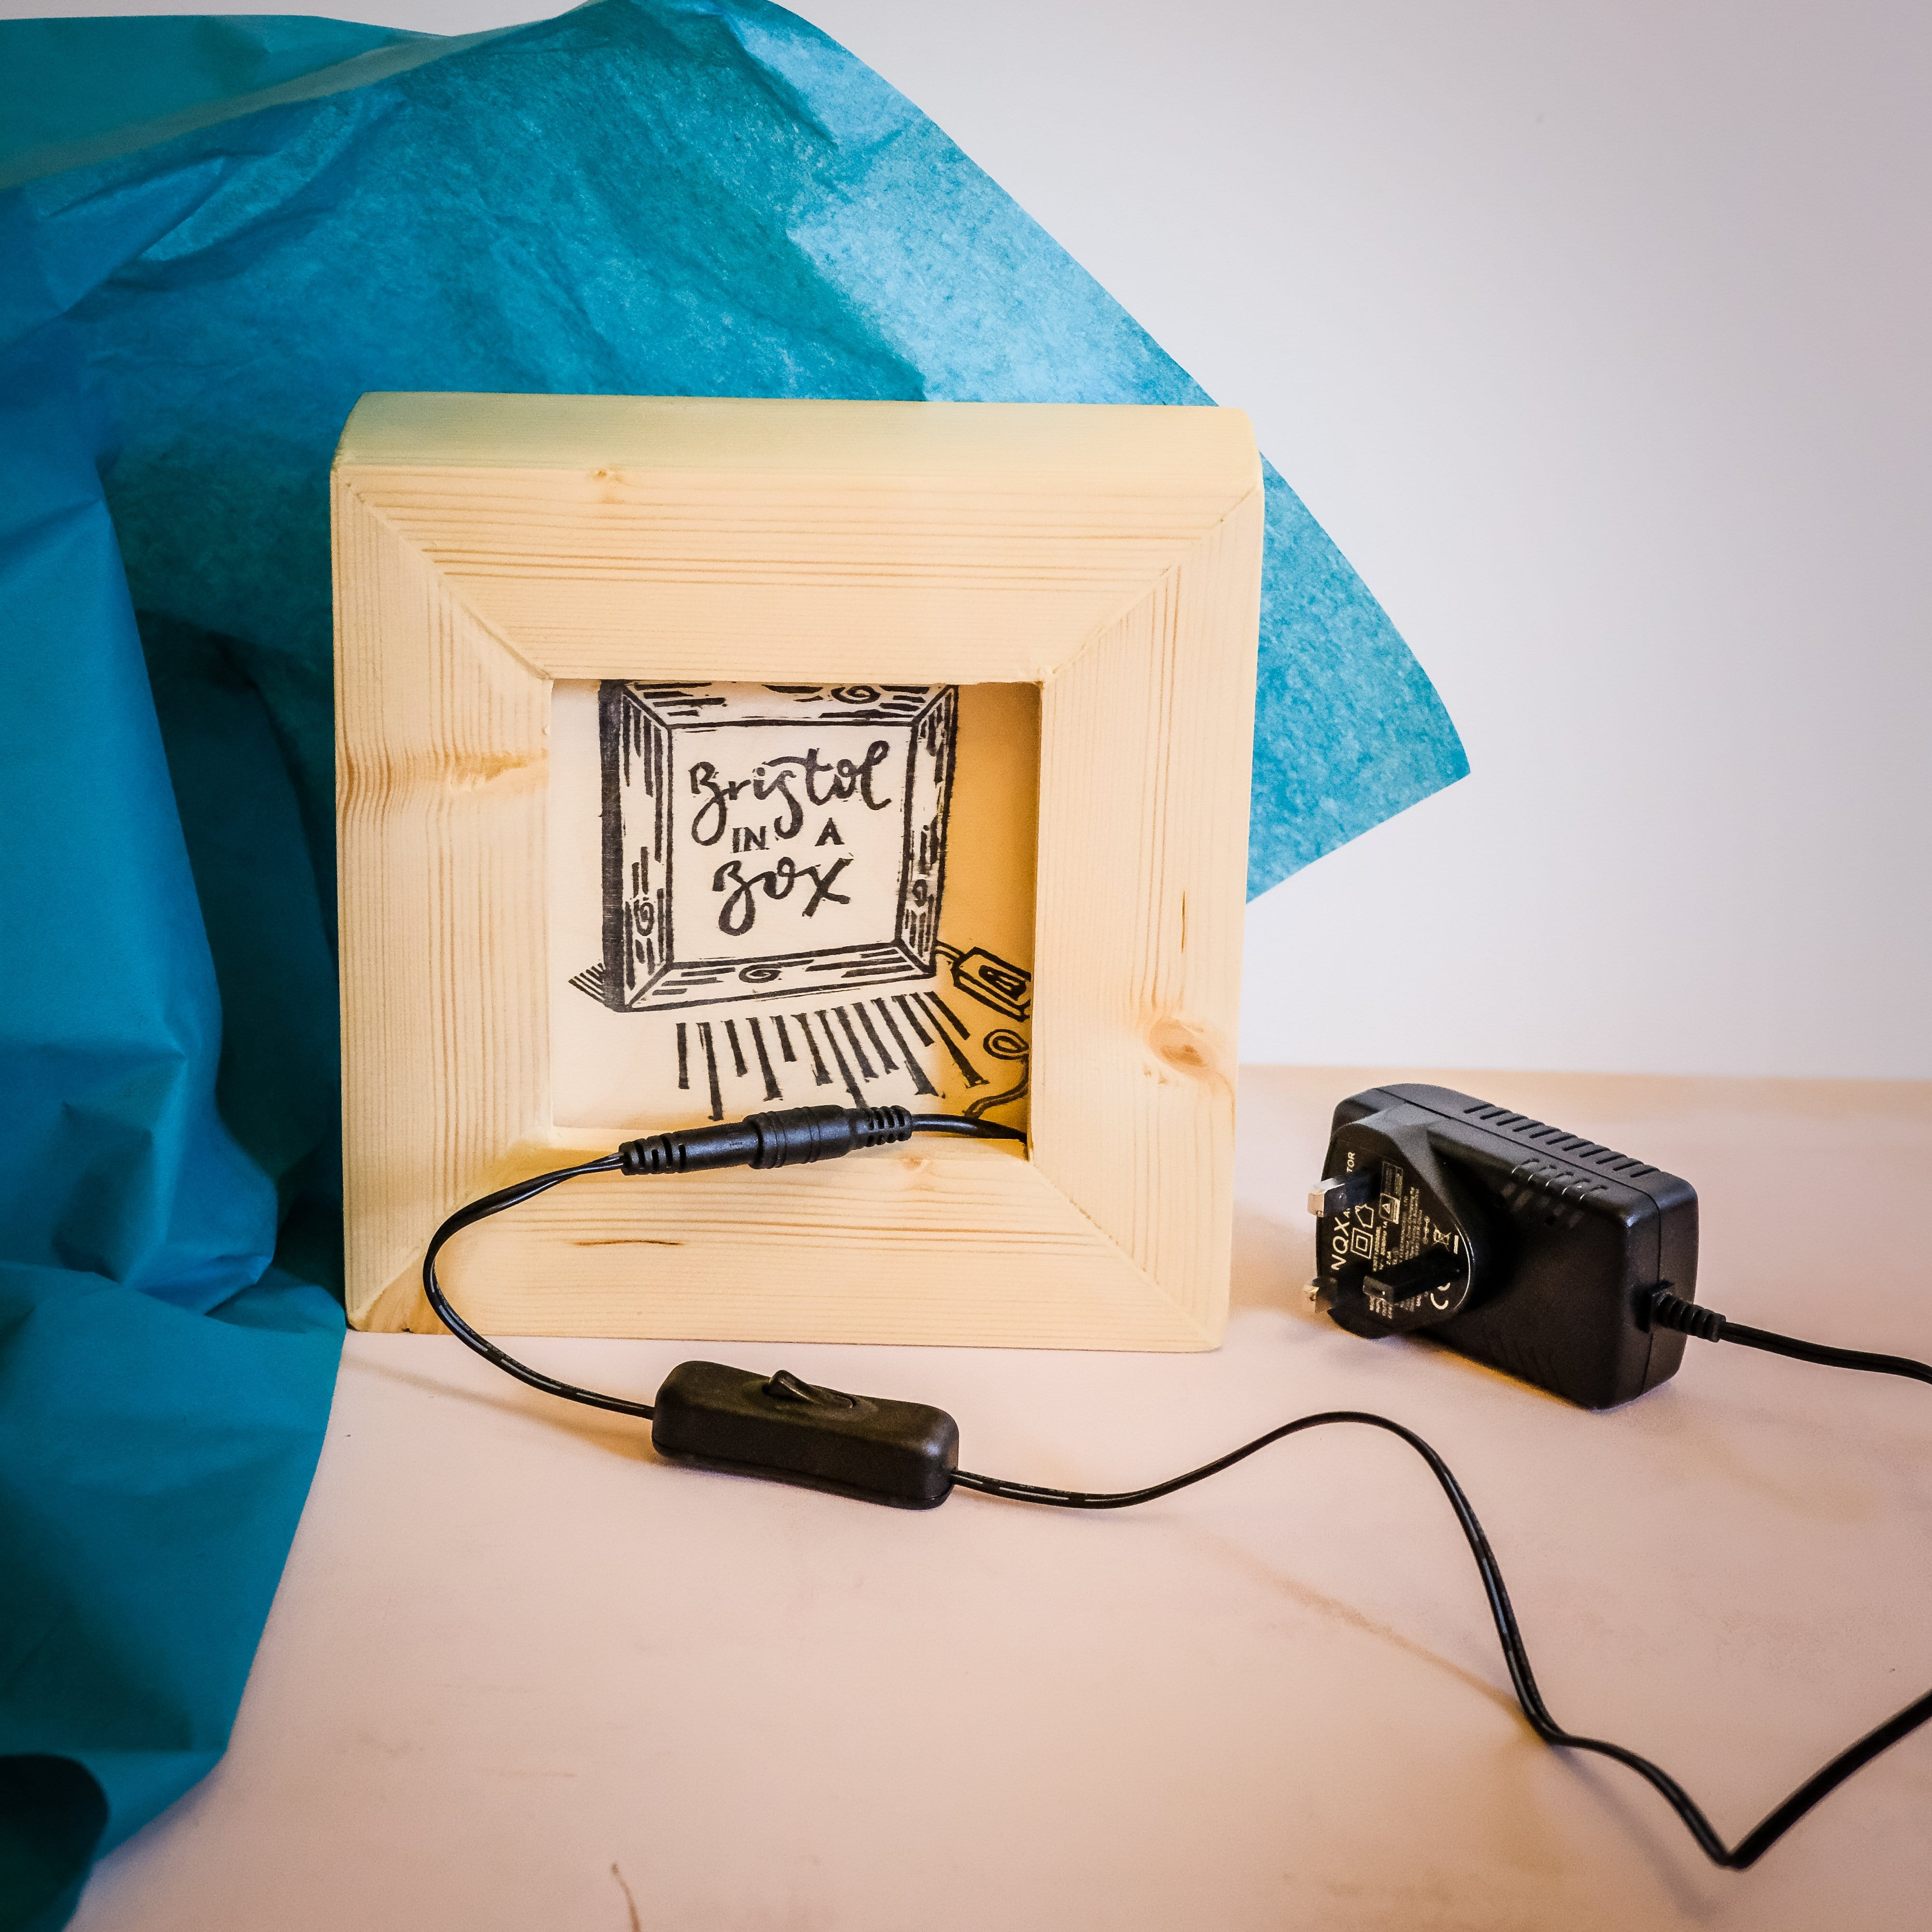 Wooden light box with its on/off switch